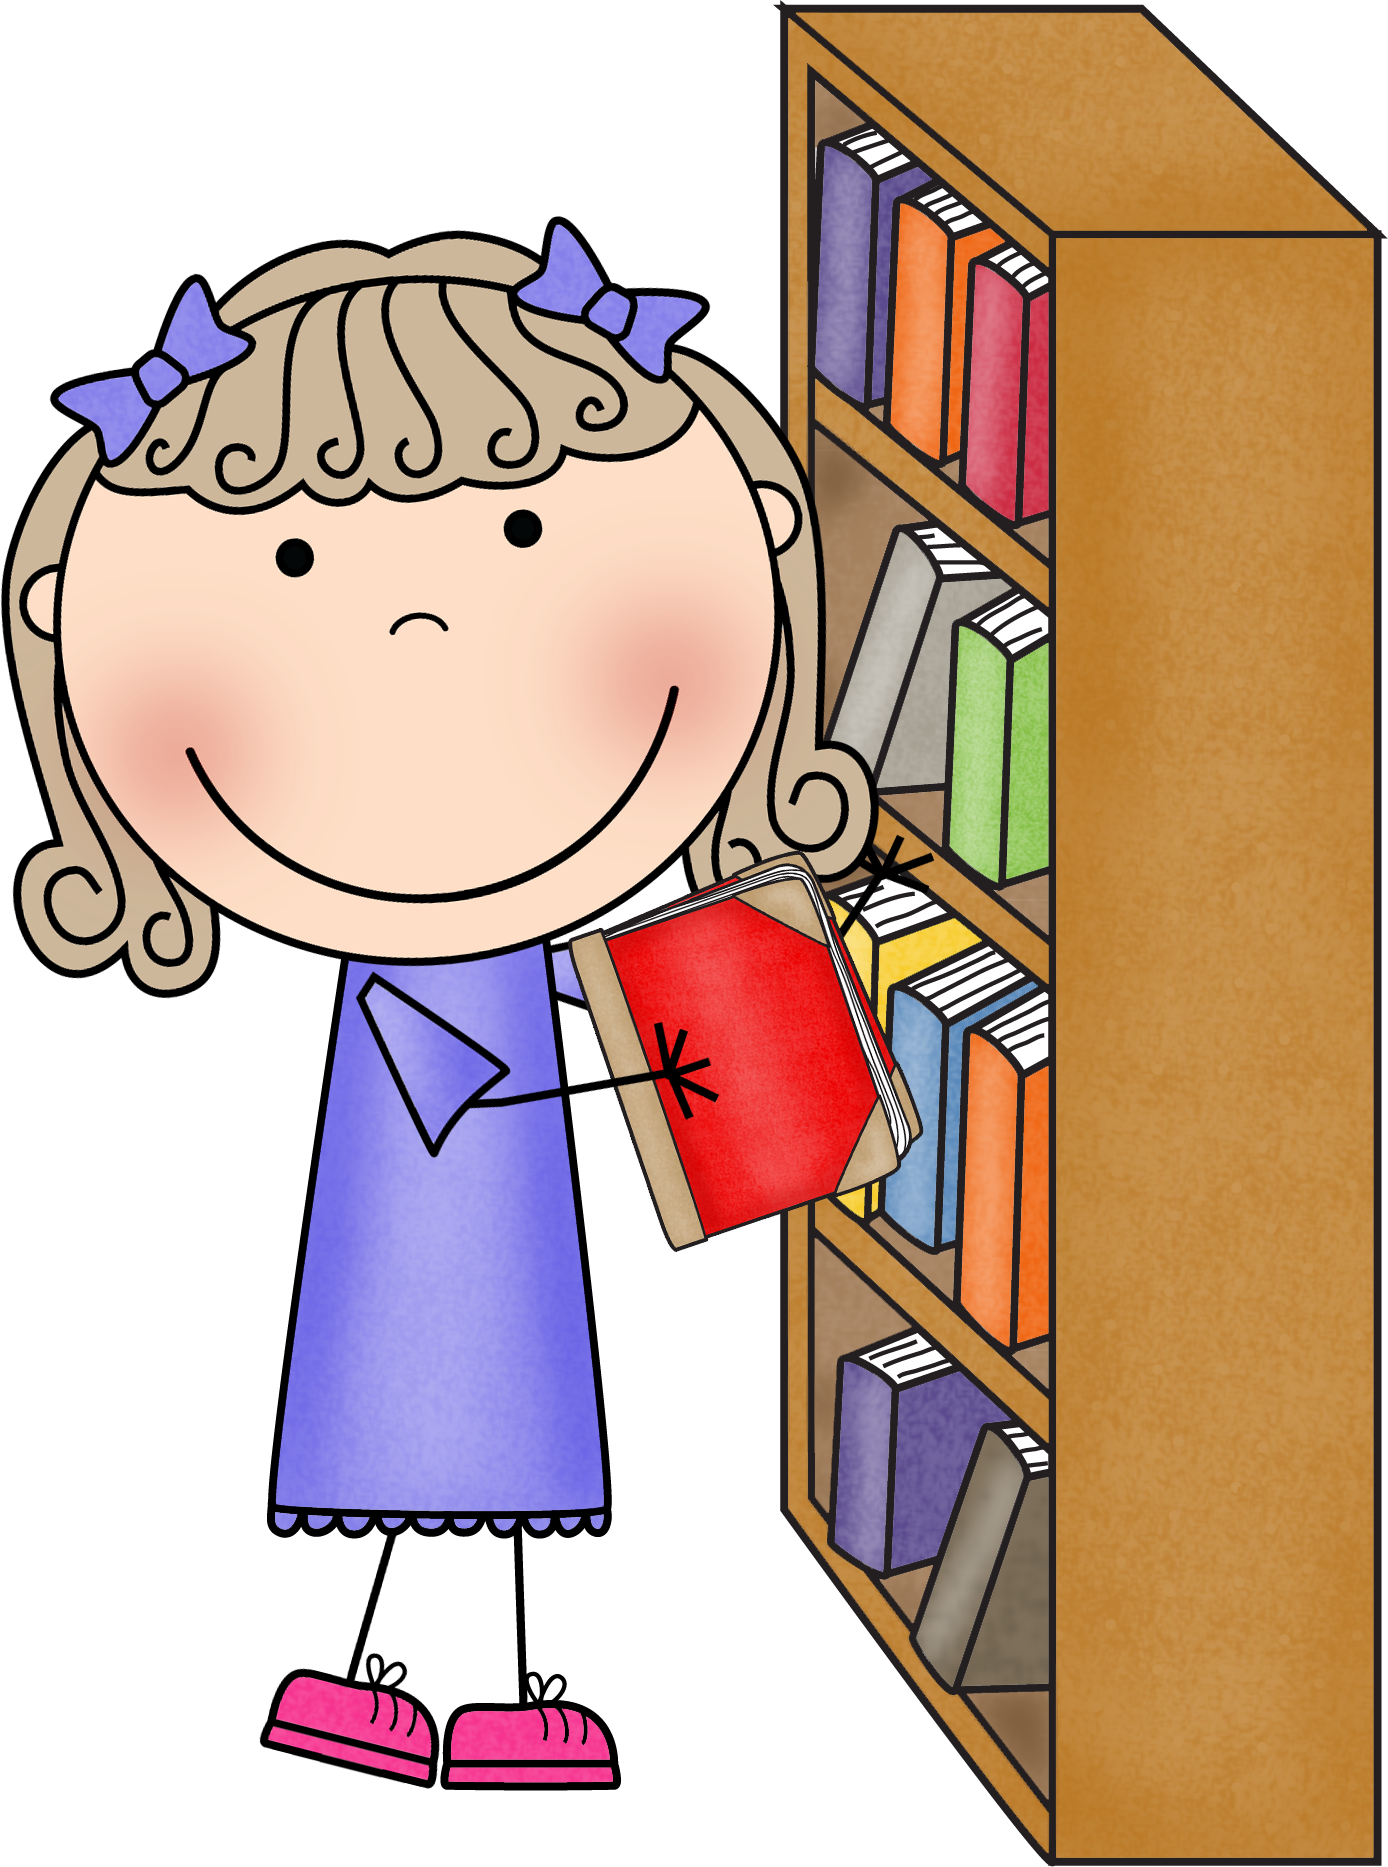 Library clipart library shelf.  collection of for